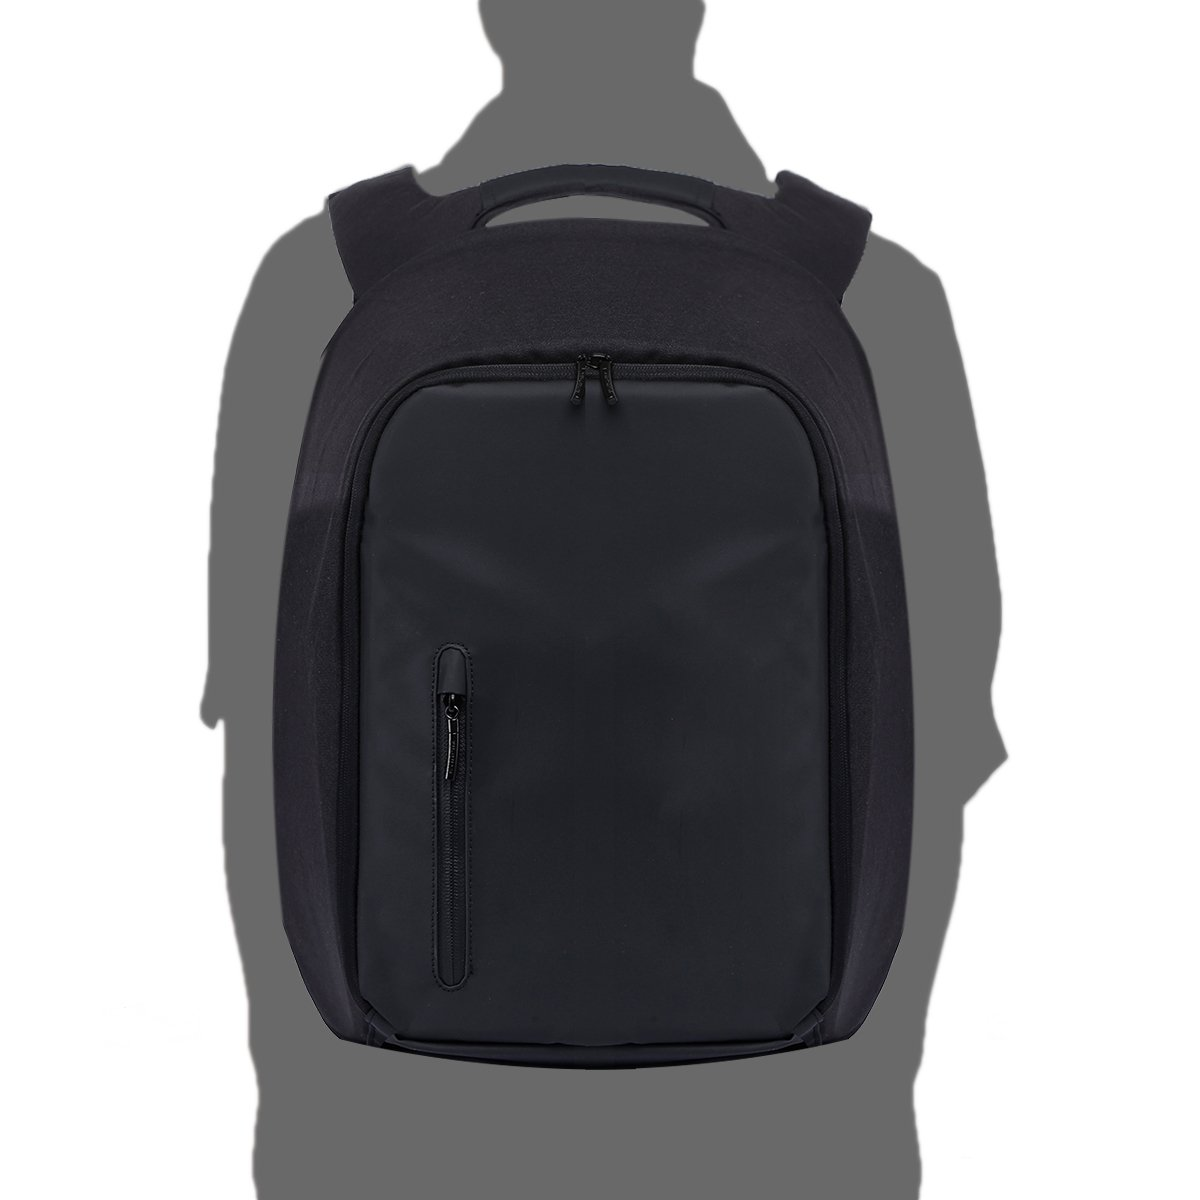 Anti-Theft Laptop Backpack Water Resistant College Backpack School Bag Business Bag with USB Charging Port for 15.6 Inch Laptop Notebook Travel Backpack Size 11.81\'\' x 6.69\'\' x 17.72\'\' (Black)